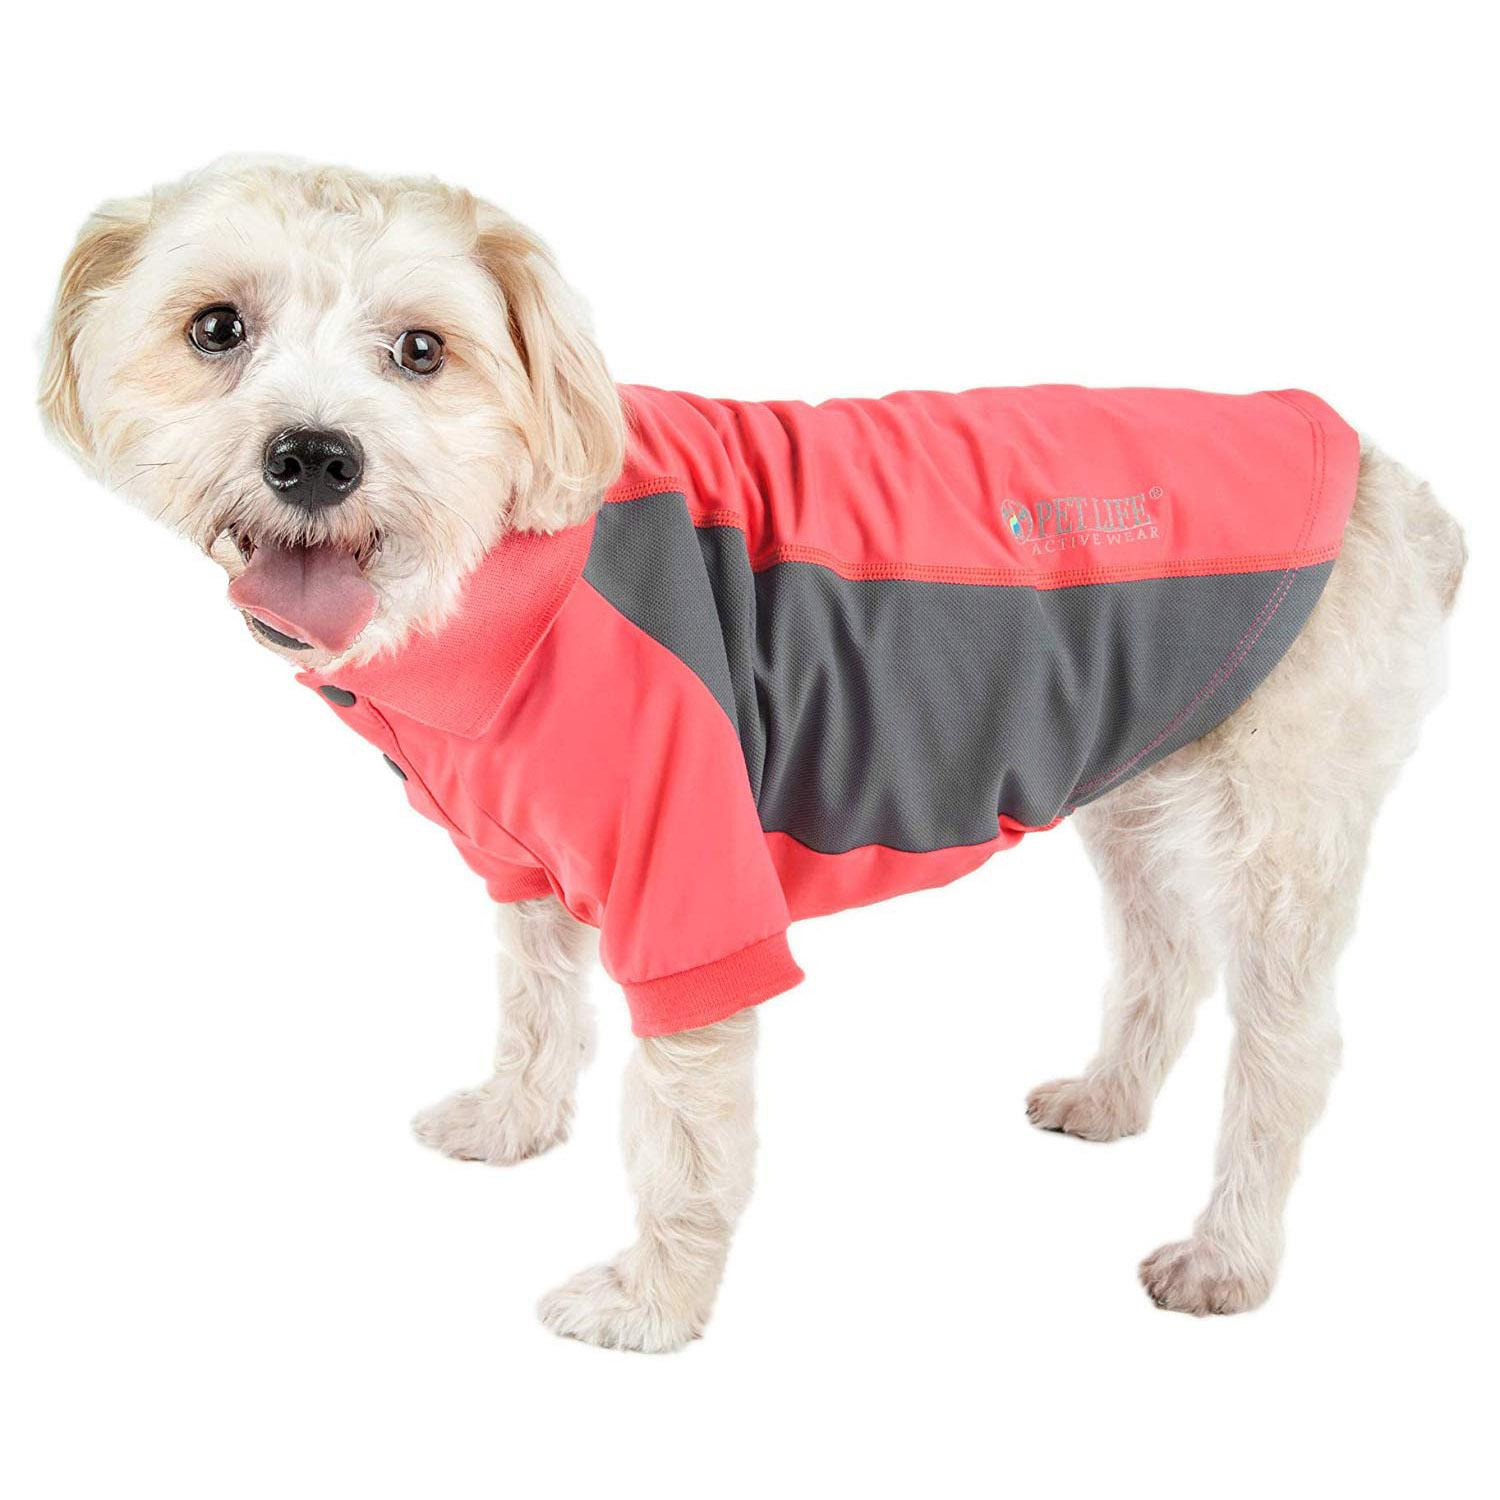 Pet Life ACTIVE 'Barko Pawlo' Performance Dog Polo - Salmon Red and Gray